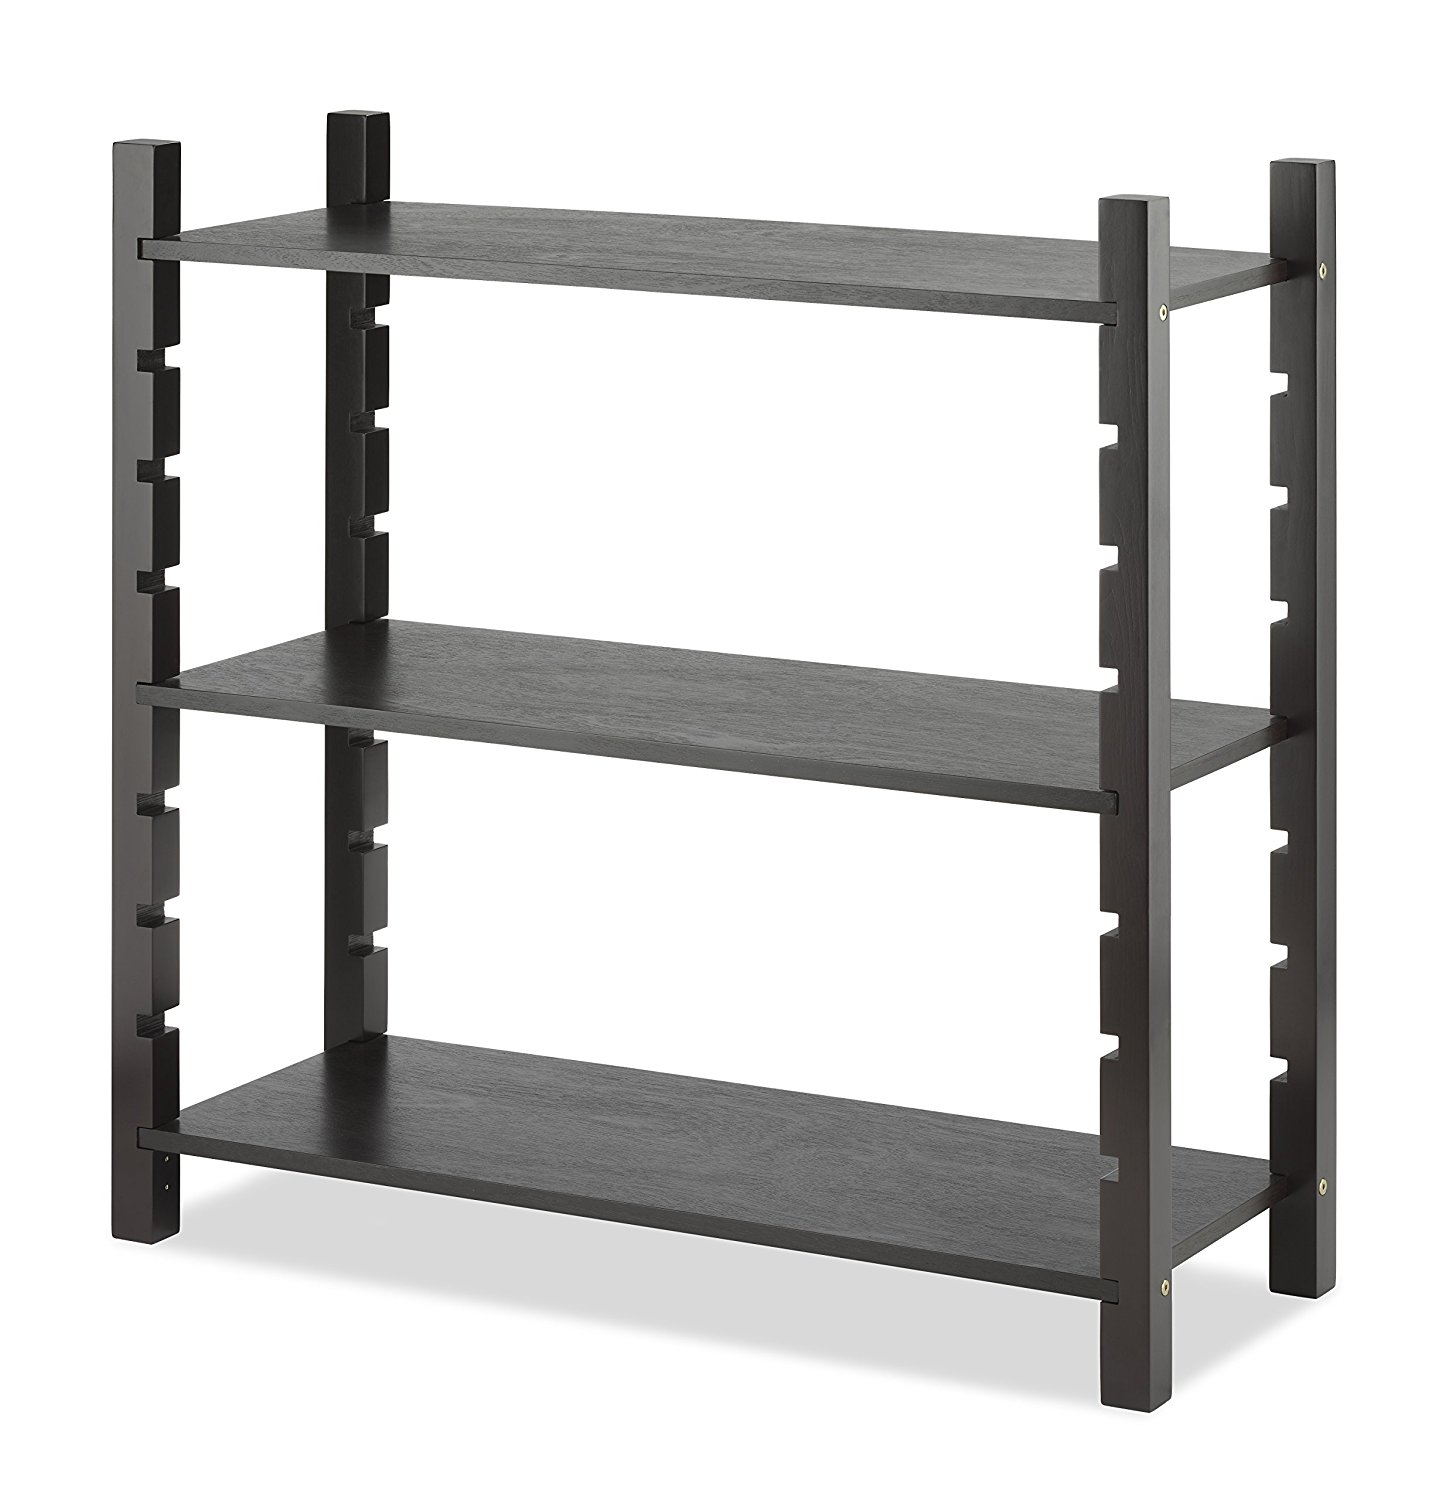 Modular 3 Tier Shelving, Walnut